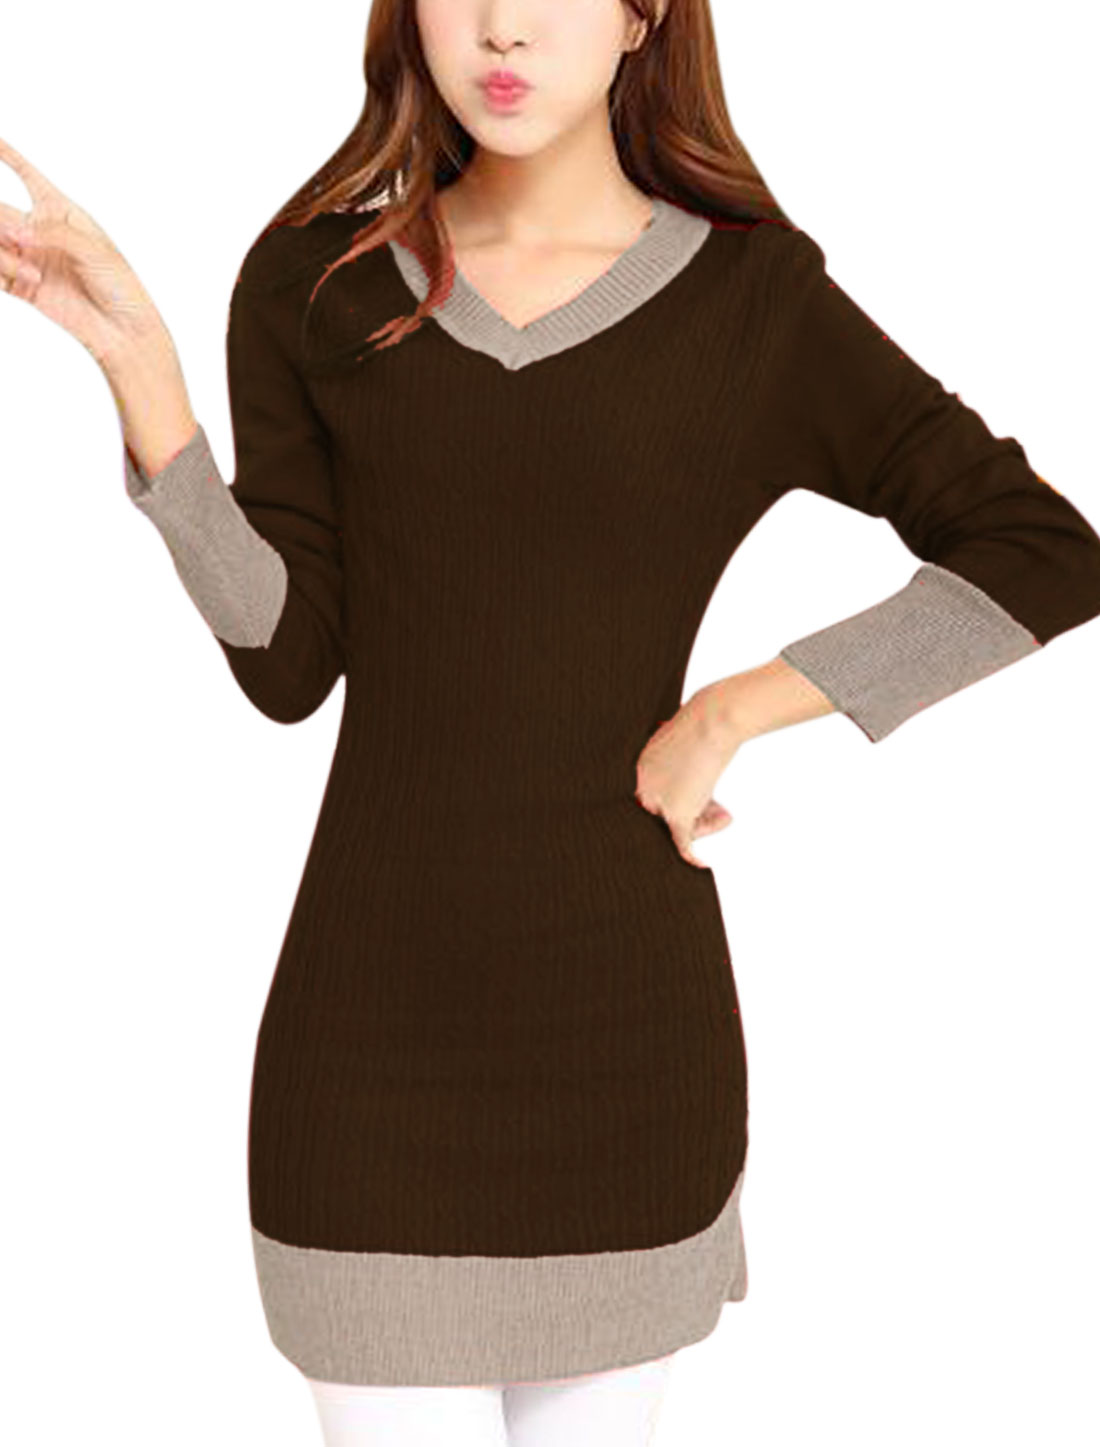 Ladies Dark Brown Full Sleeves Contrast Color Straight Knitted Dress S